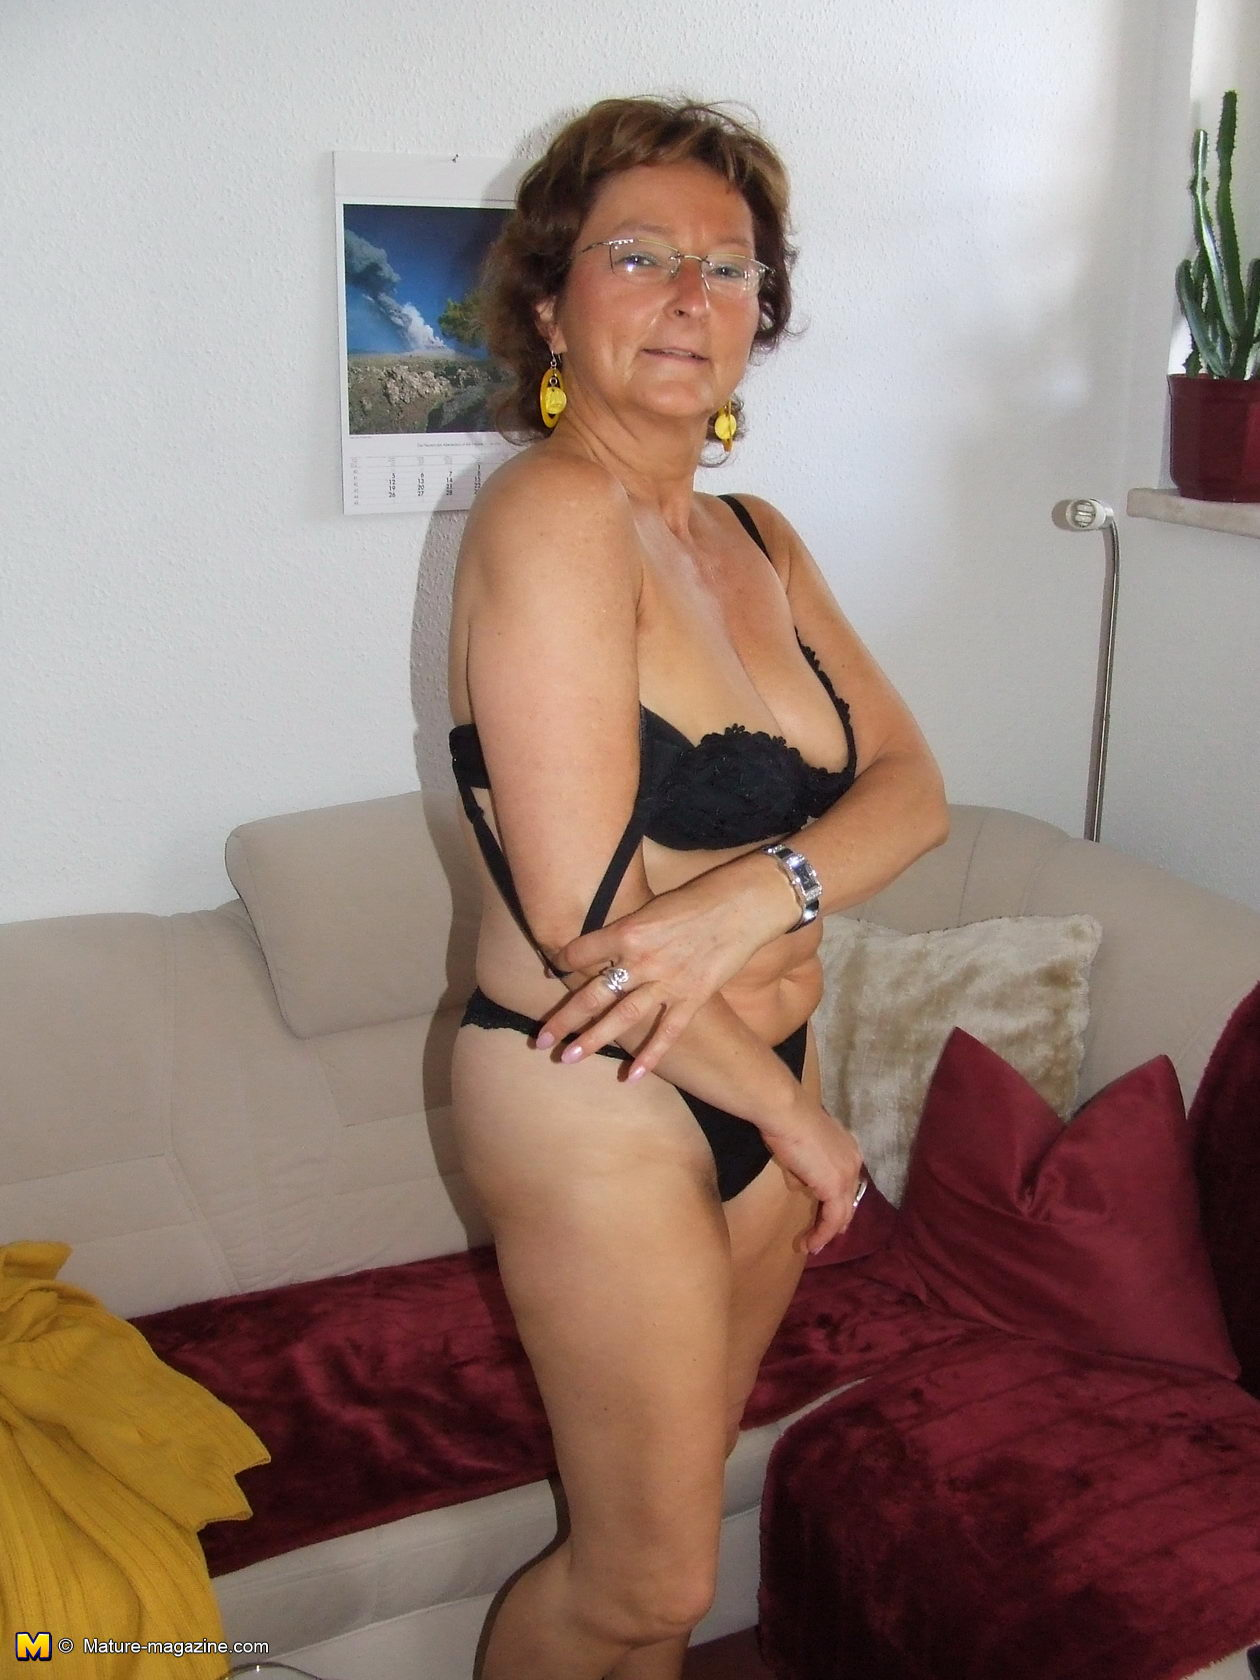 Omageil fatty grandmas pics slideshow collection 5